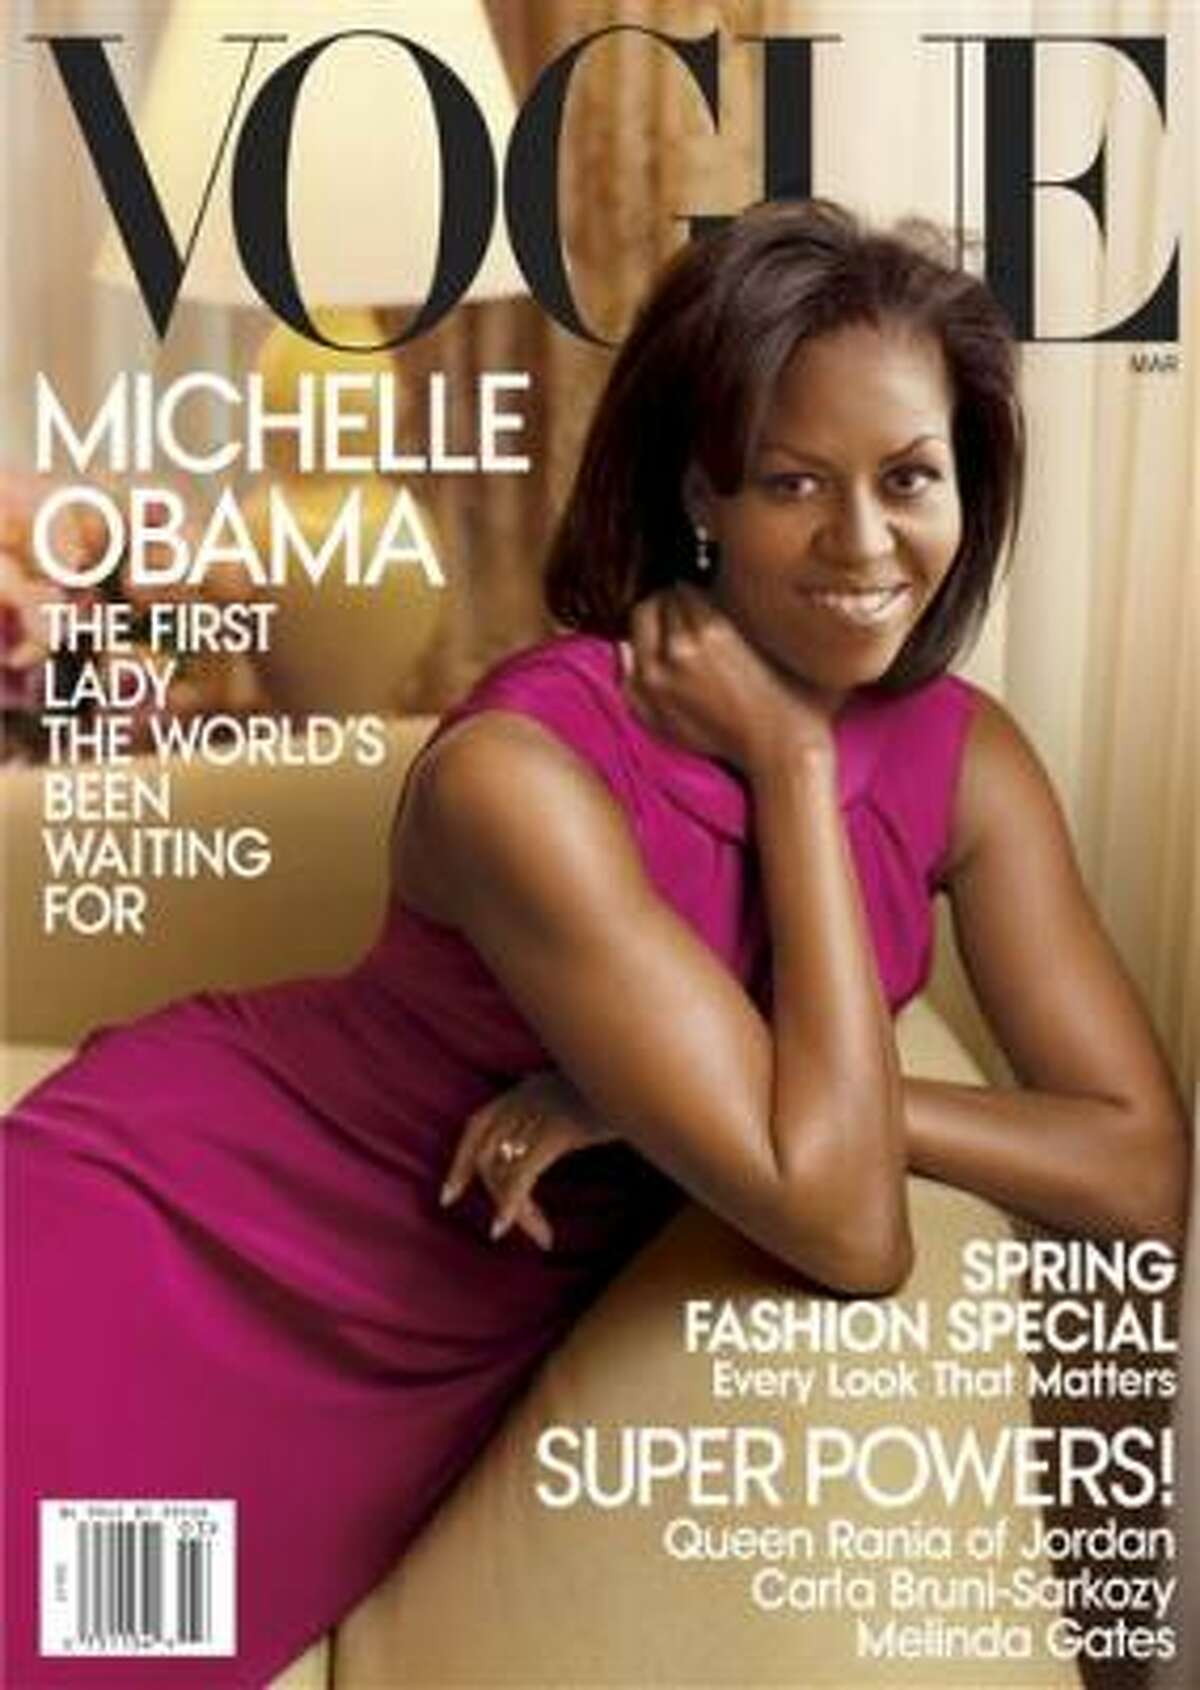 Michelle Obama graces the new edition of Vogue.